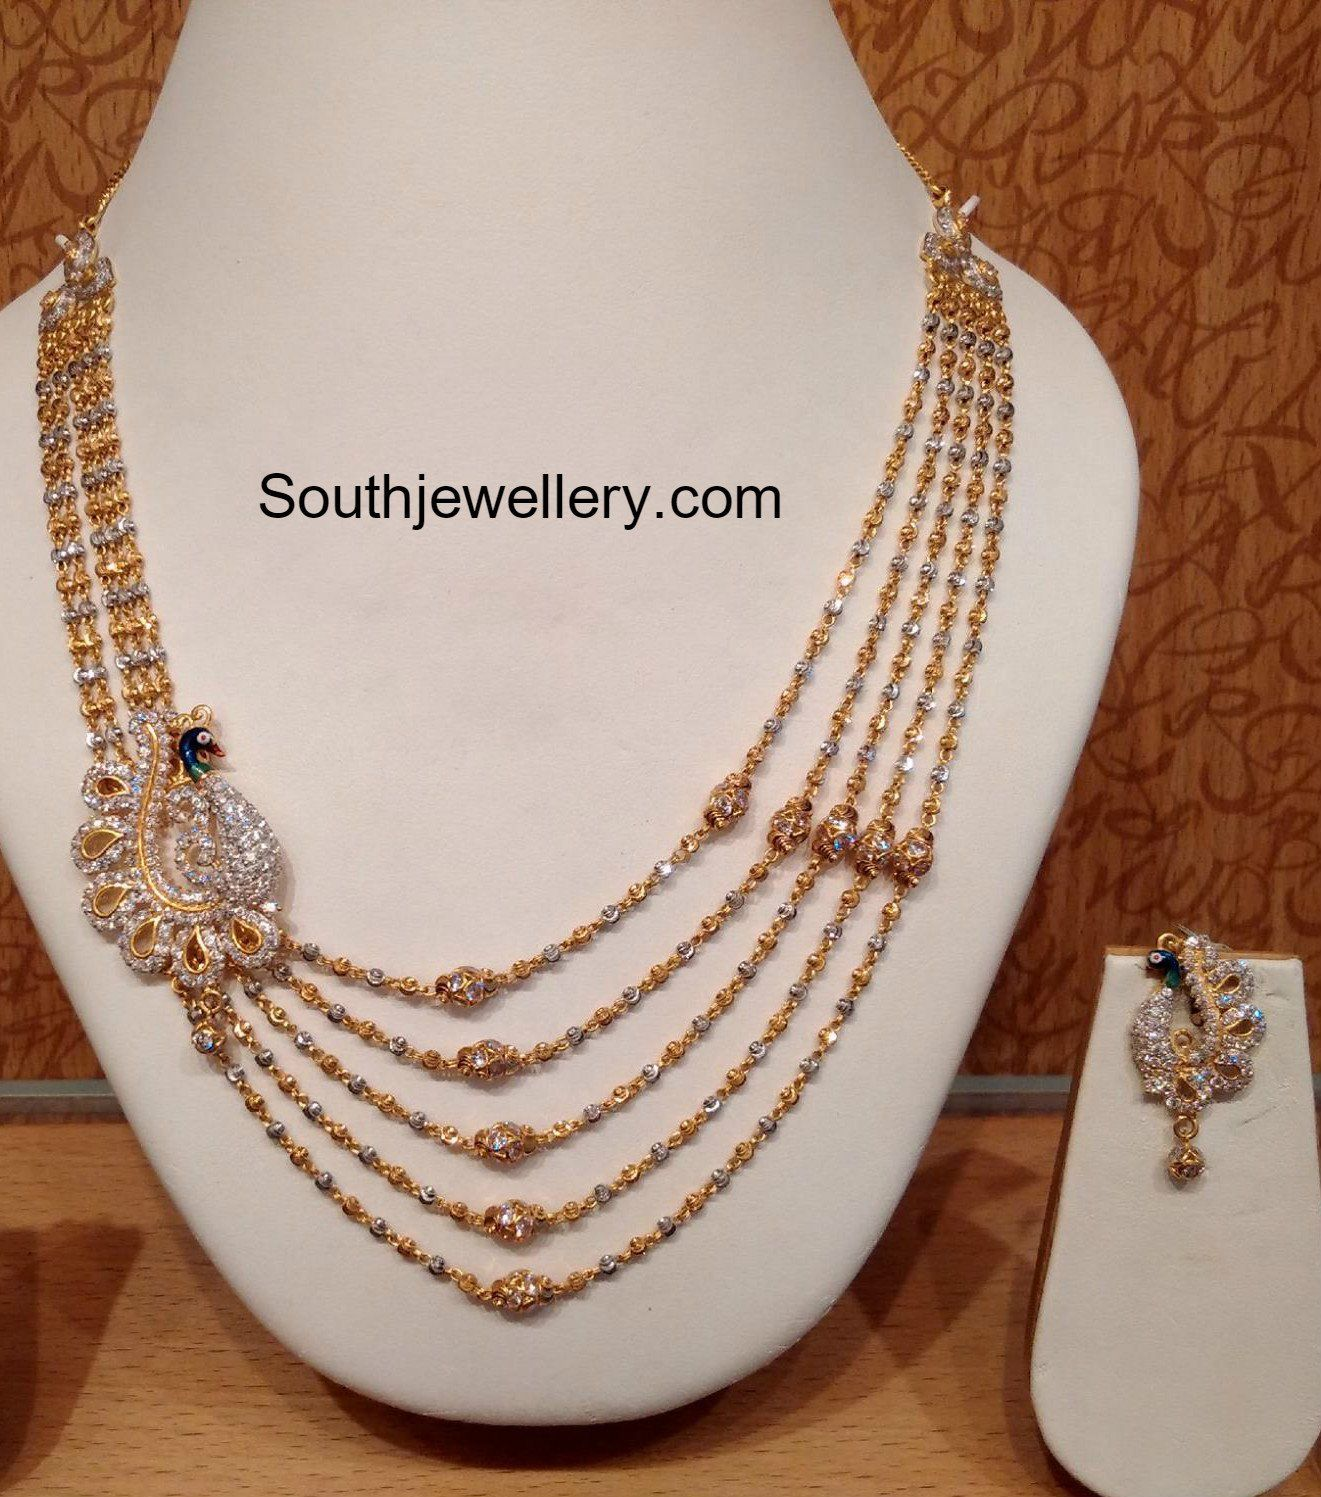 Latest gold necklace designs in grams pachi necklace latest jewellery - Gold Necklace Latest Jewelry Designs Page 2 Of 64 Jewellery Designs